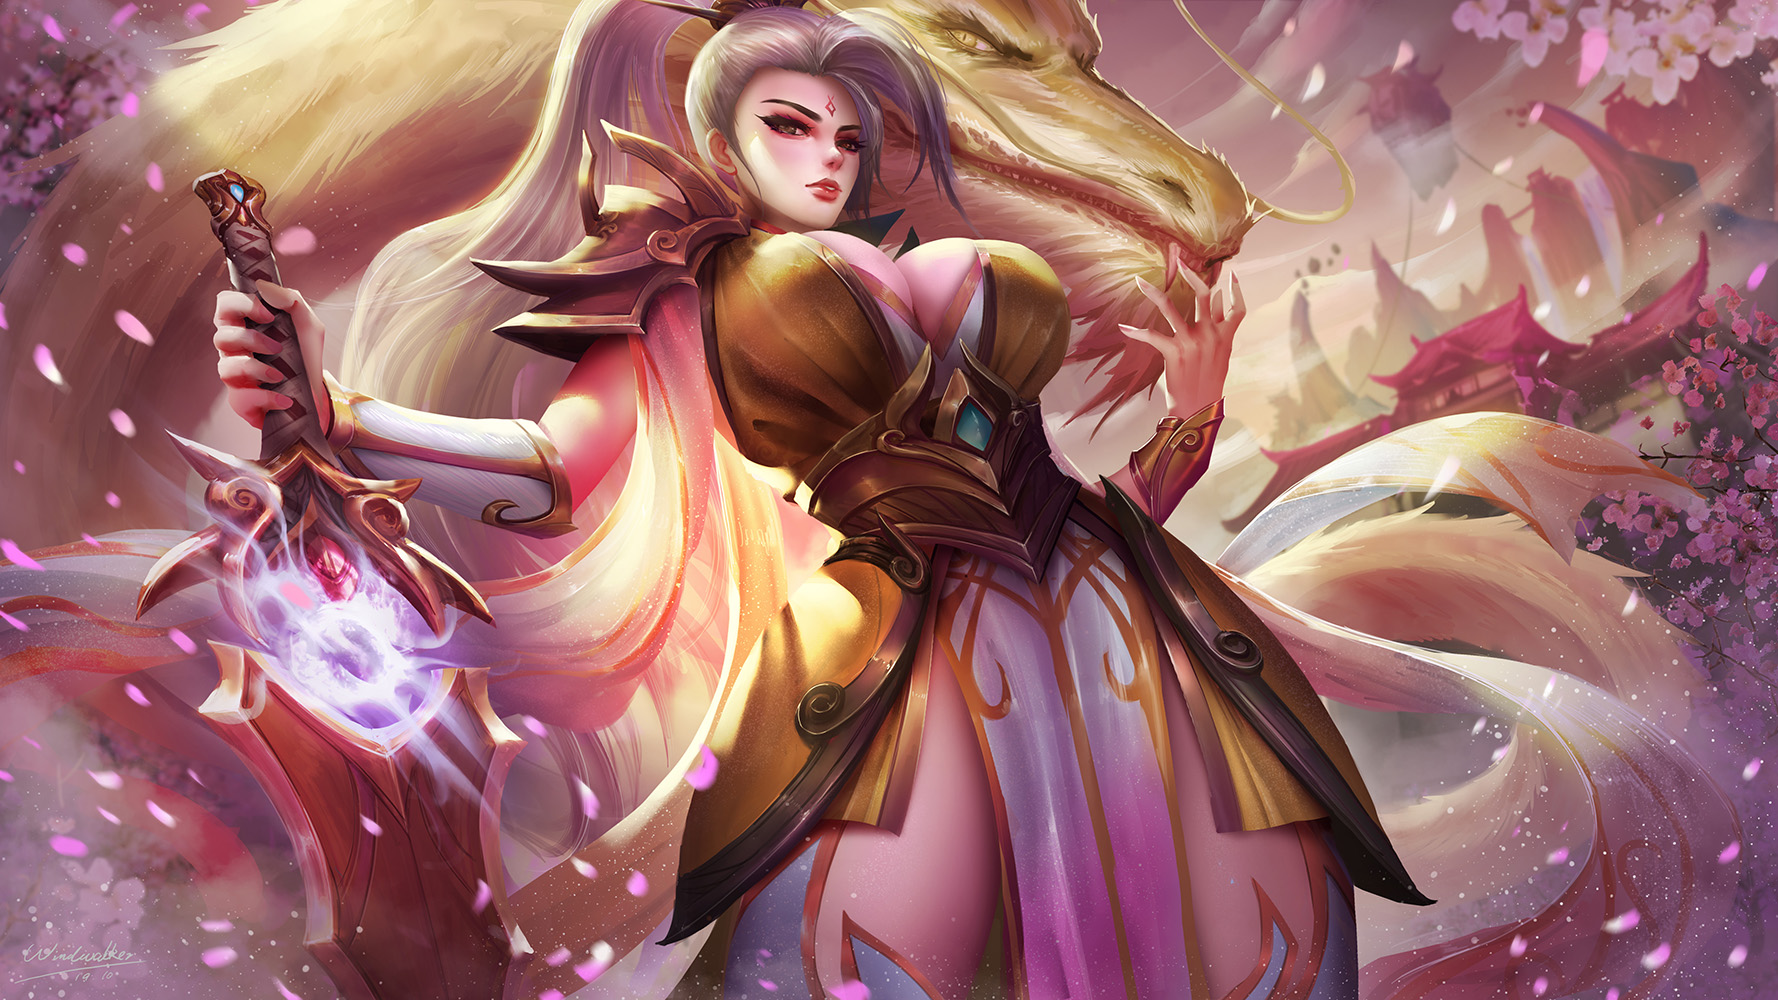 General 1778x1000 Riven (League of Legends) League of Legends video games video game characters fantasy girl white hair ponytail cleavage dress armor sword weapon dragon cherry blossom depth of field fantasy art video game girls artwork drawing digital art fan art Windwalker Pixiv petals big boobs